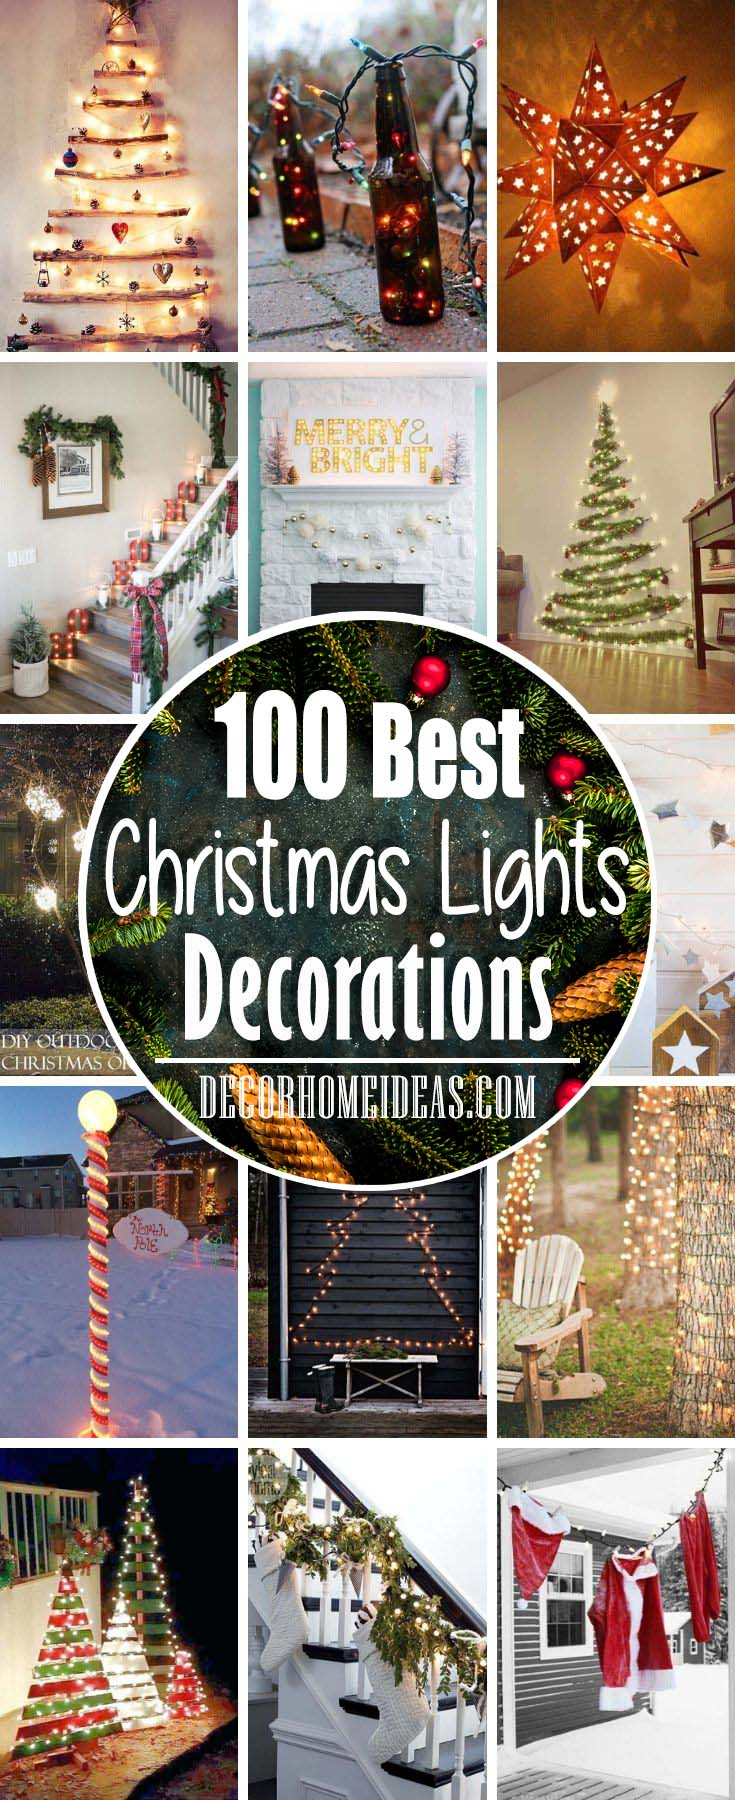 Best DIY Christmas Lights Decorations Ideas #diy #Christmas #lights #decorhomeideas